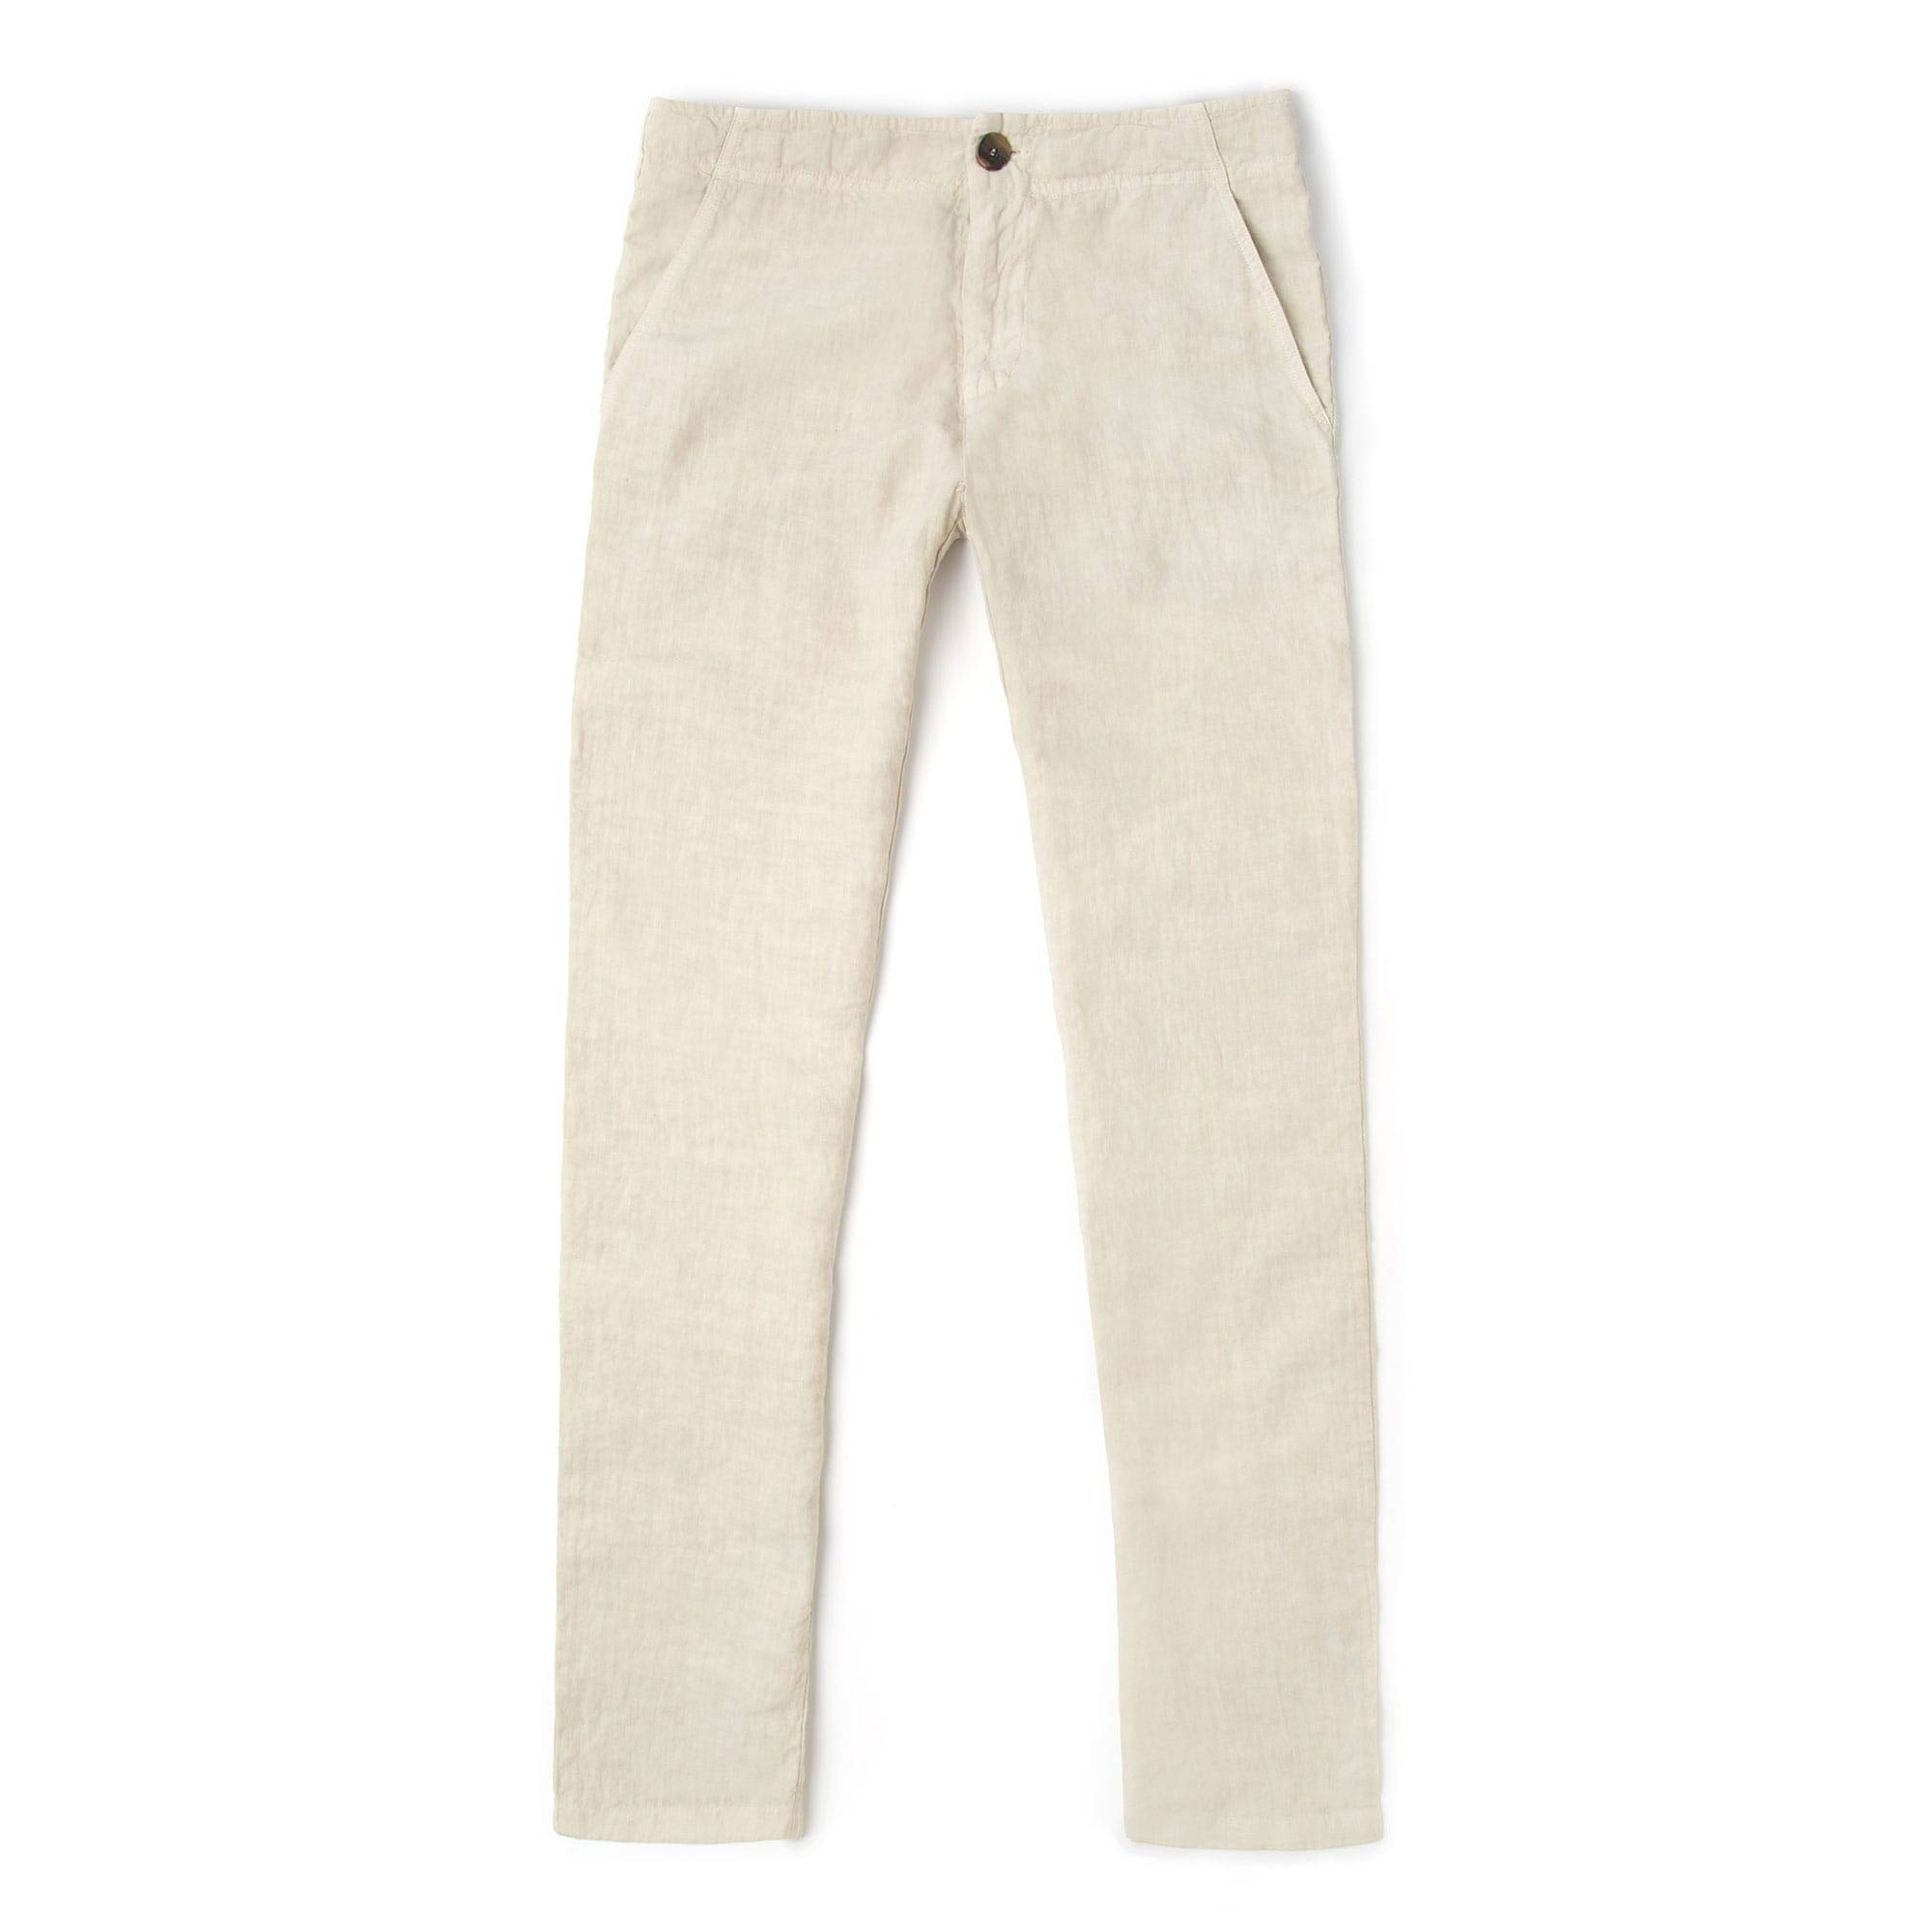 Luca Faloni Sand Linen Trousers Made in Italy